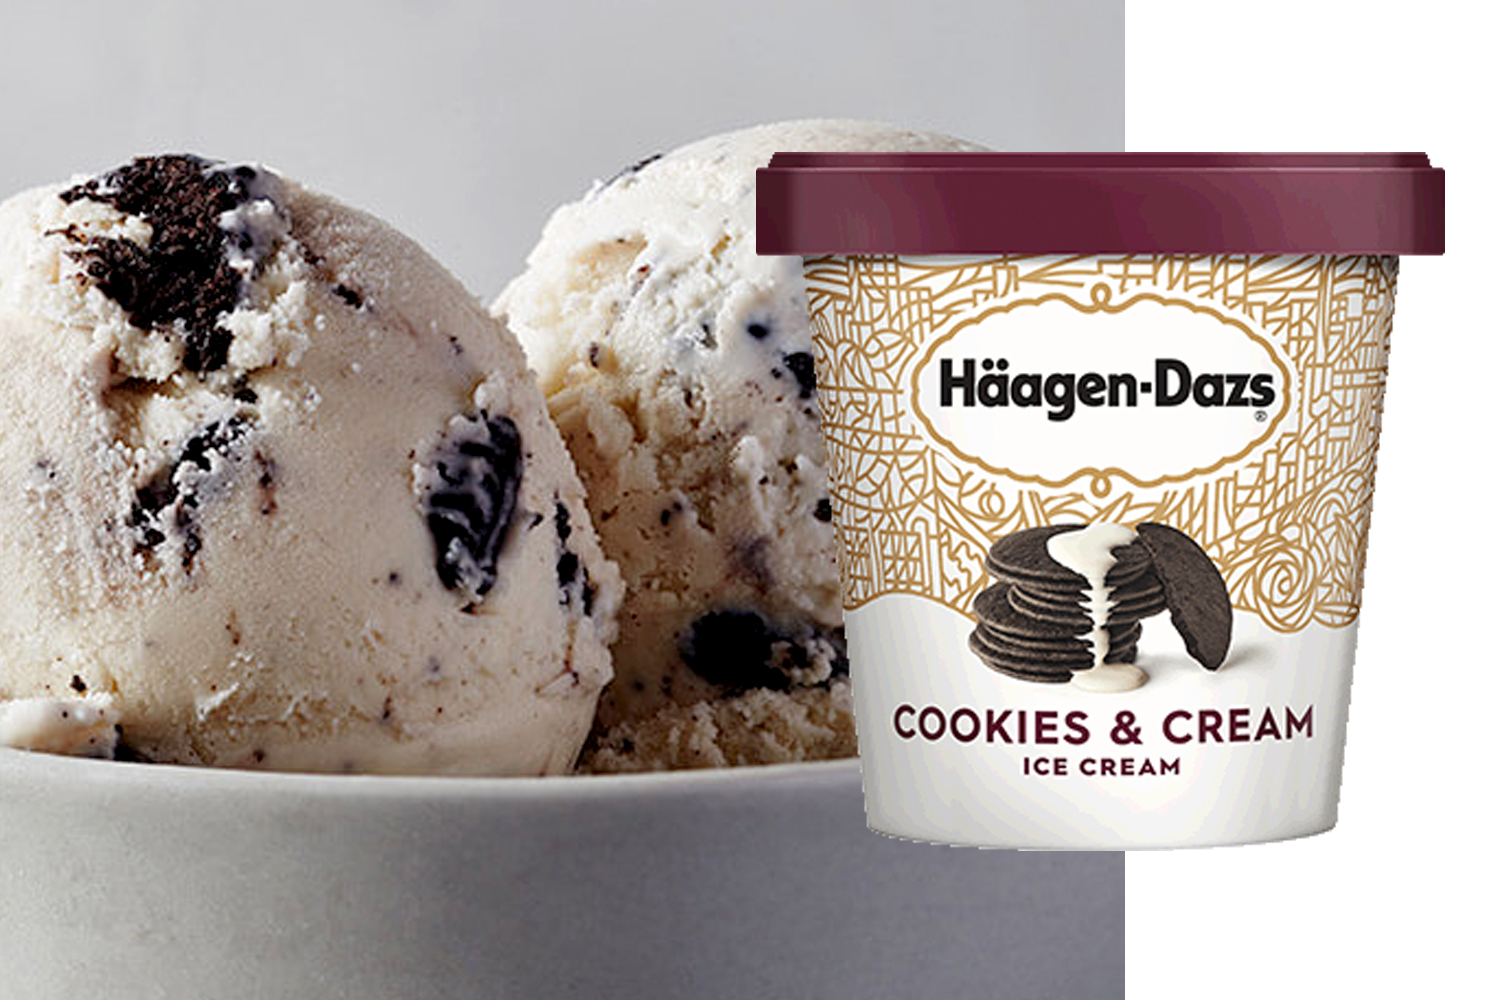 Haagen-Dazs Cookies and Cream